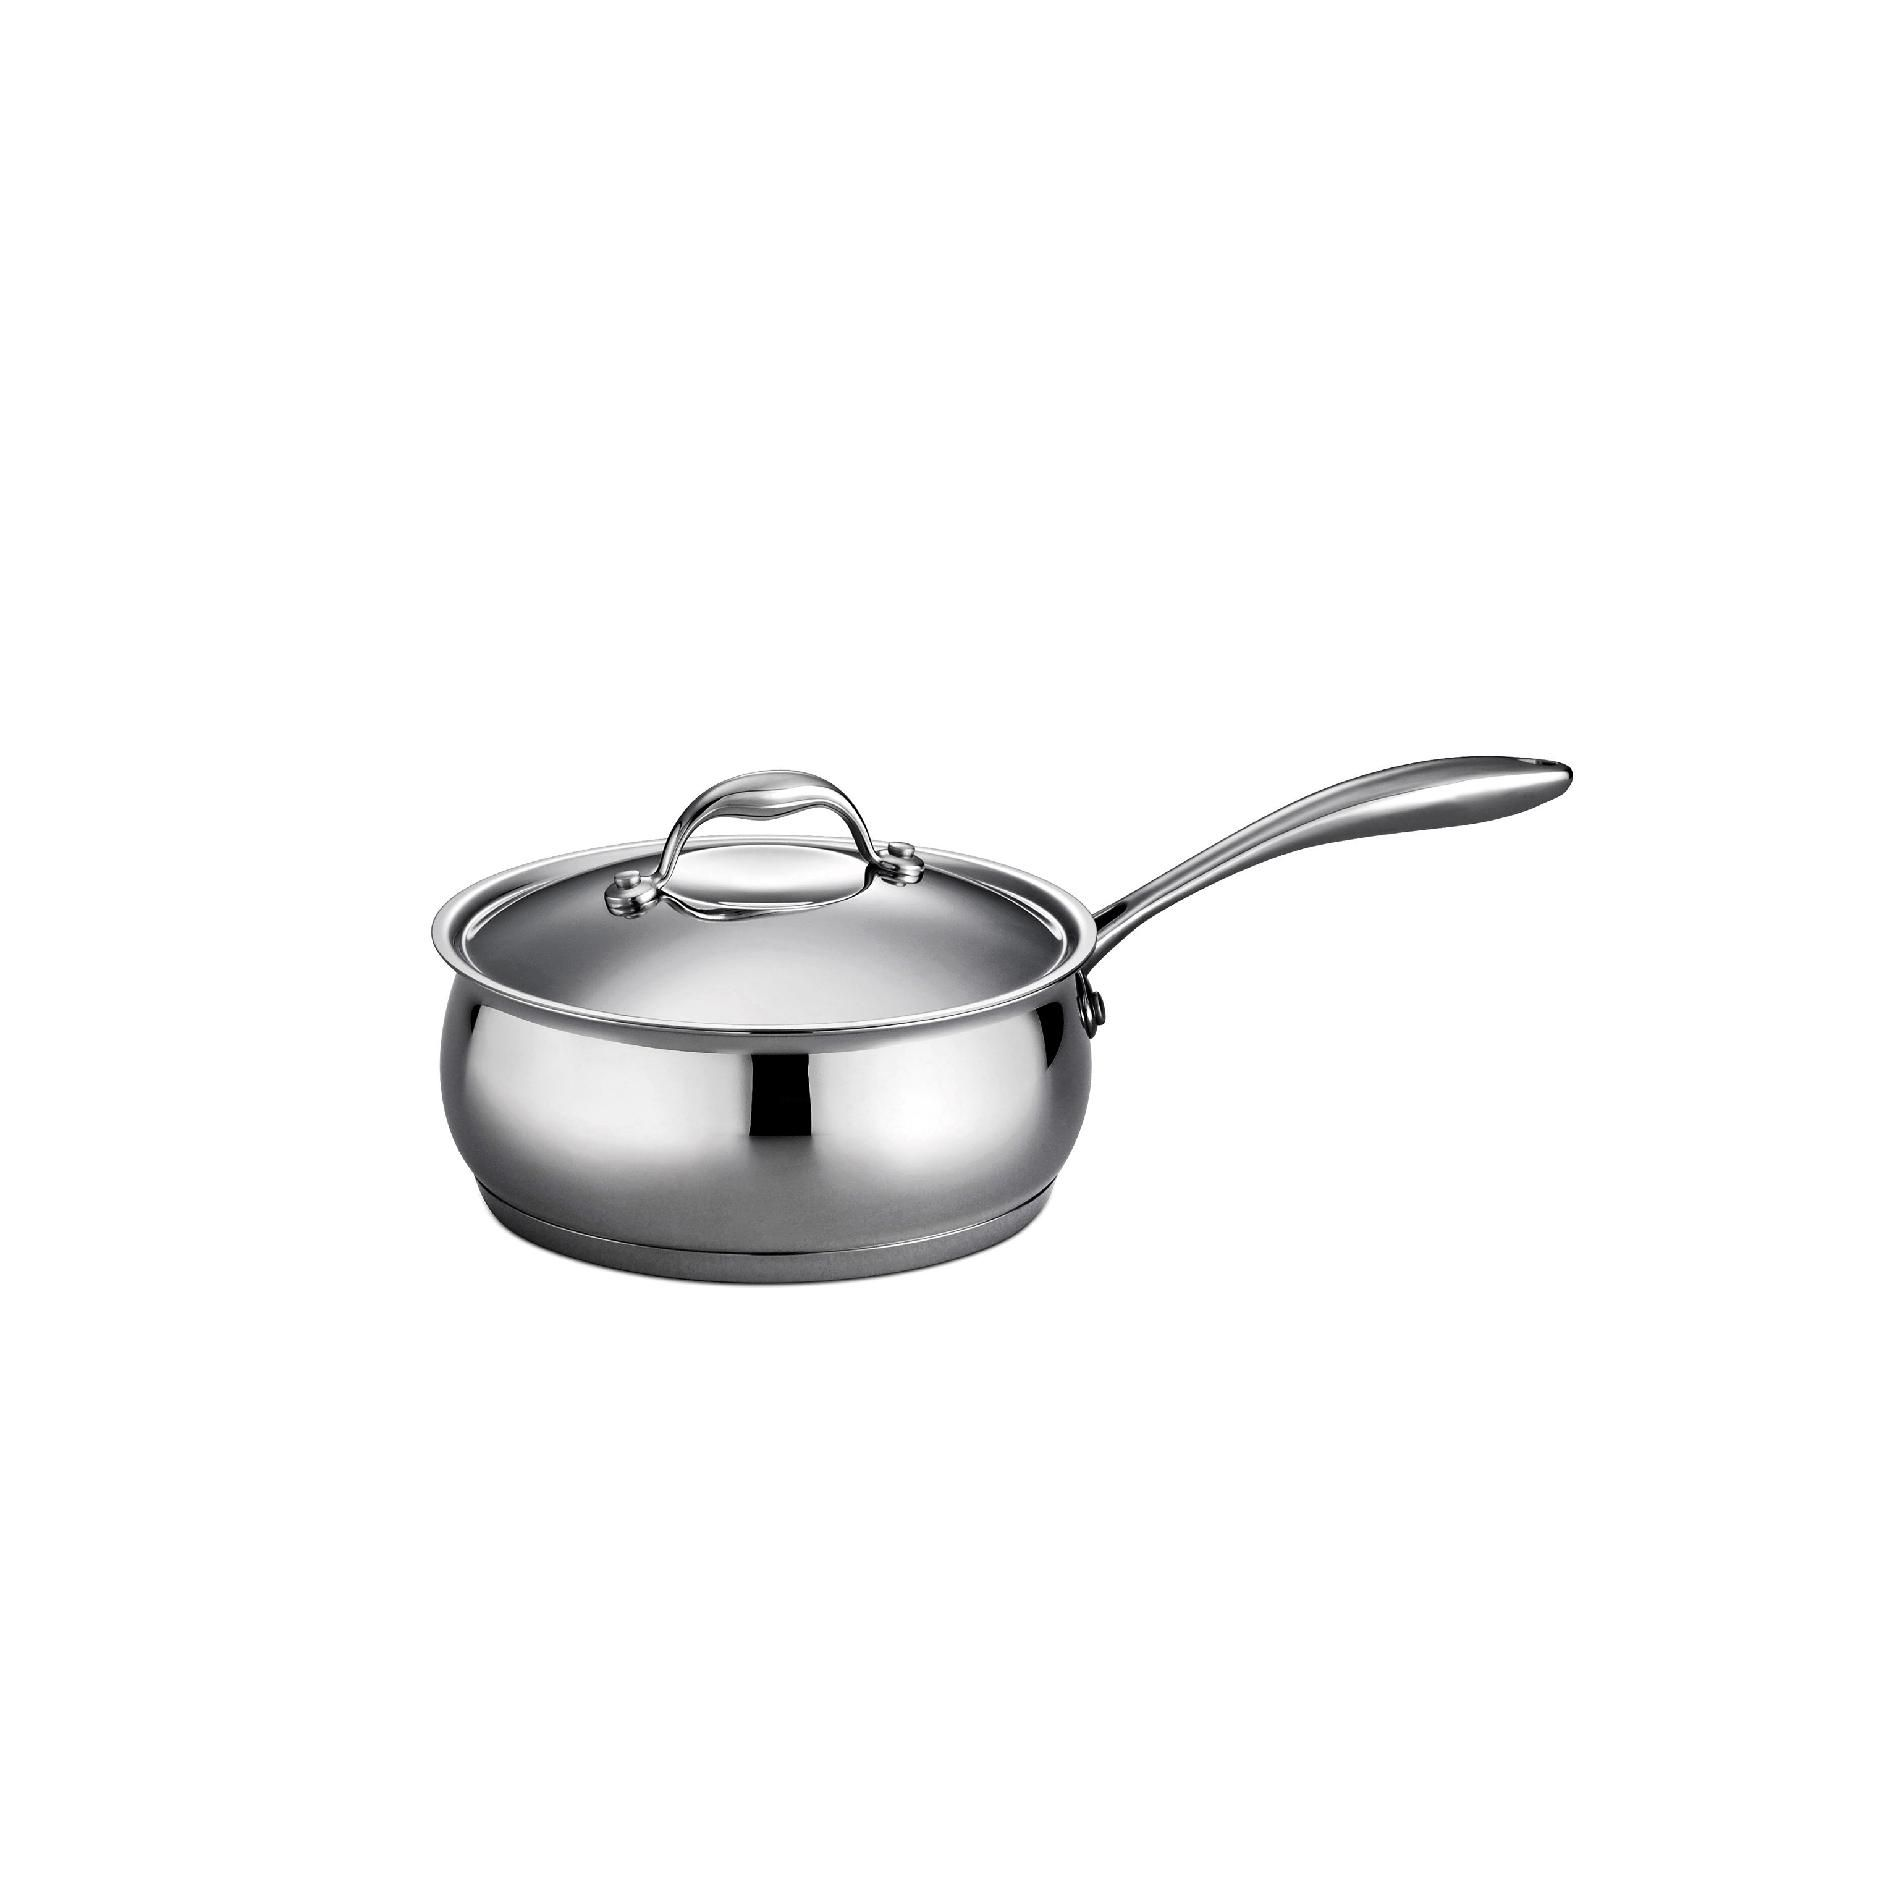 Tramontina Gourmet - Domus 18/10 Stainless Steel 3 Qt Covered Sauce Pan, Silver